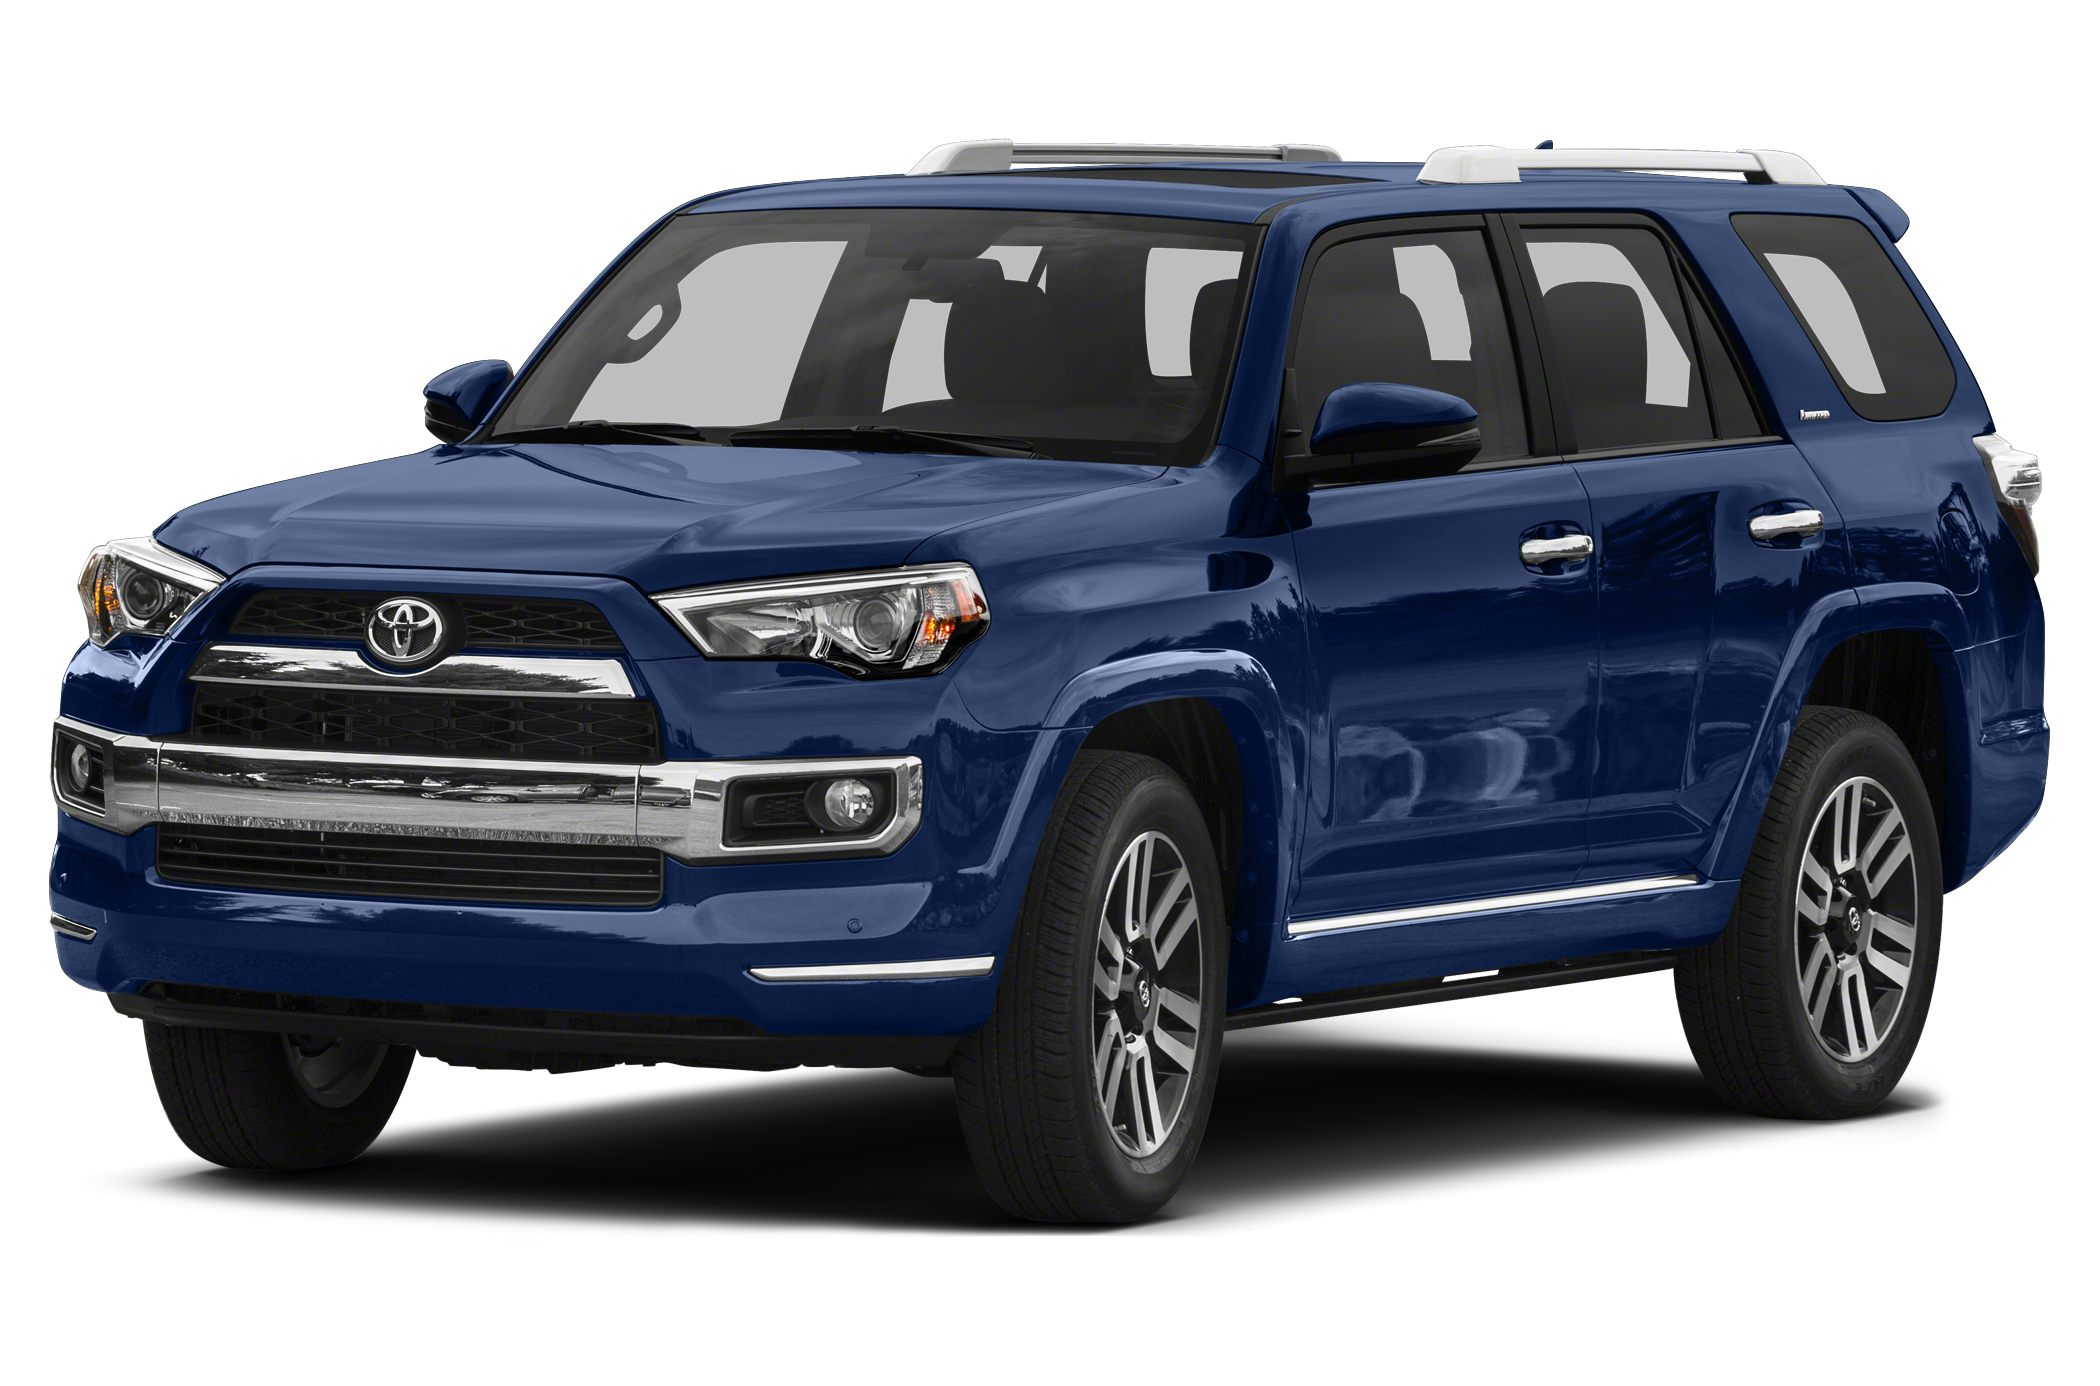 2015 Toyota 4runner Limited 4dr 4x4 Pictures